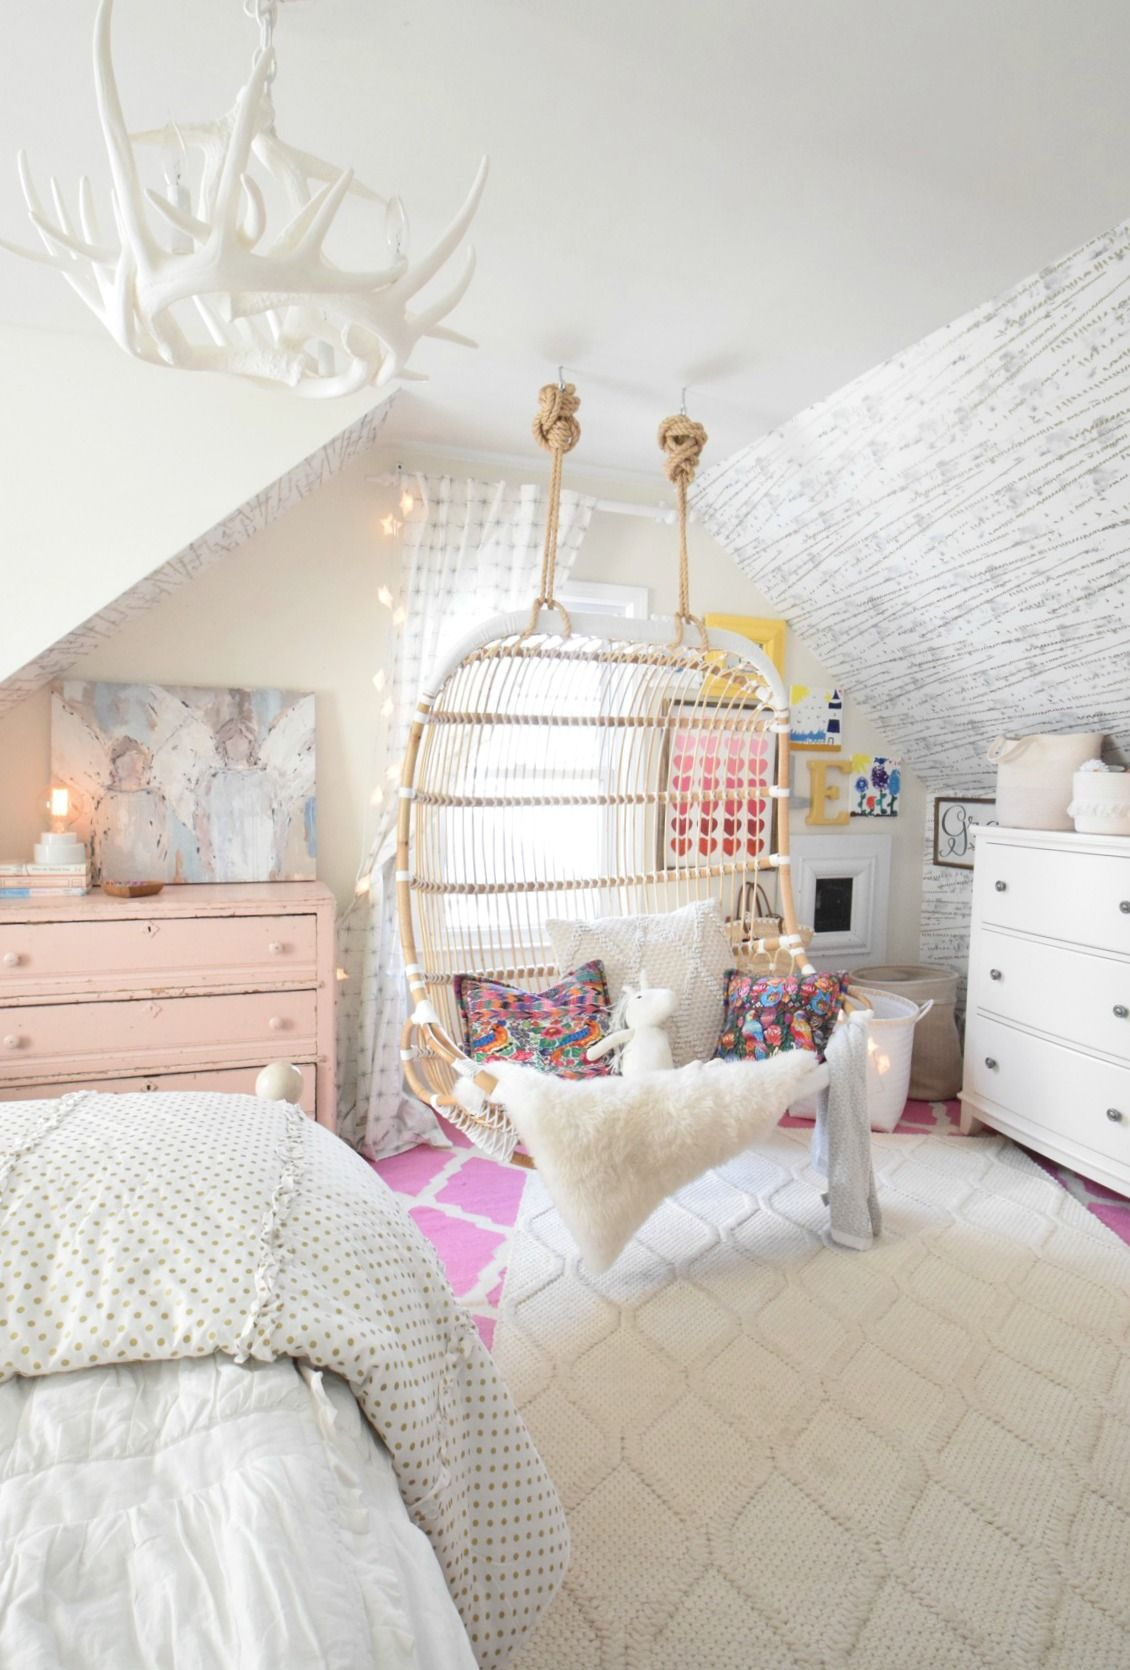 51 Ways To Diy The Bedroom Of Your Kids Dreams: How To Keep A Kids Room Clean And Organized In A Small